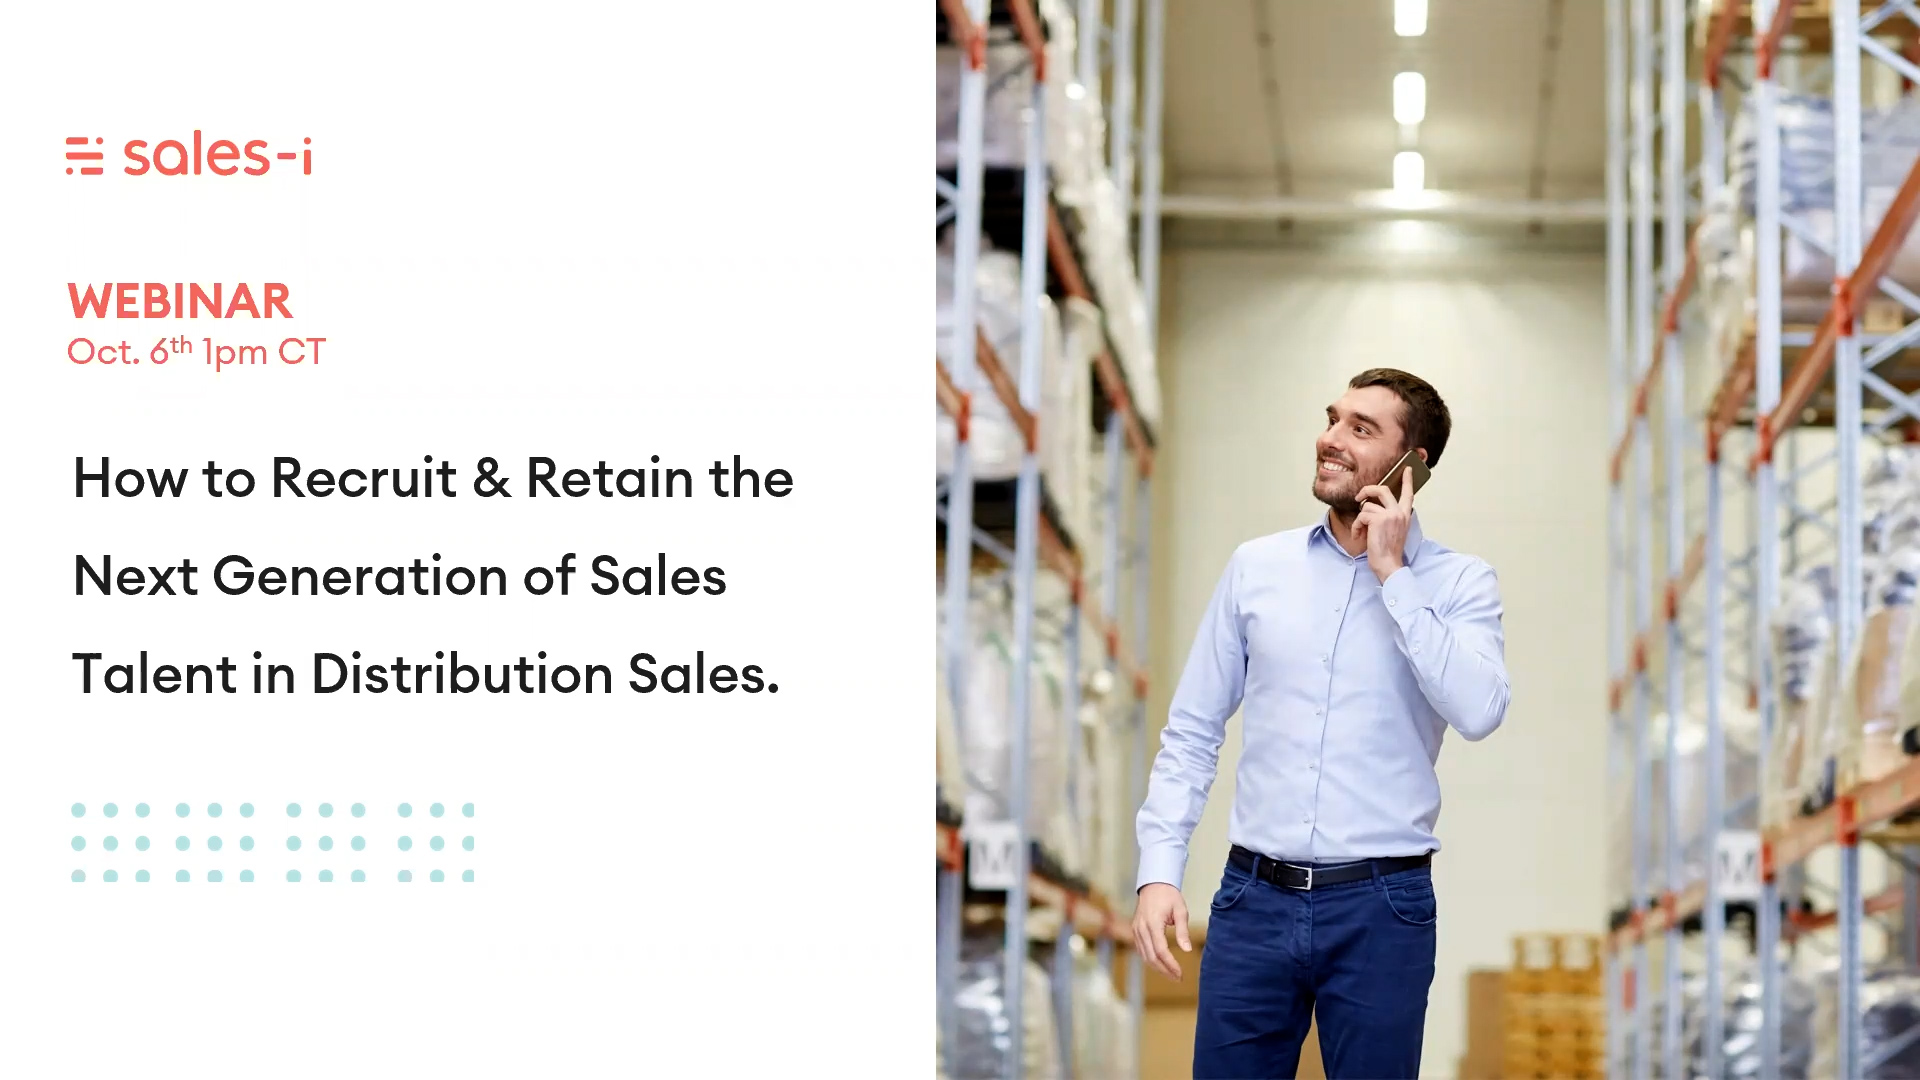 How to recruit & retain the next generation of sales talent in distribution_1920x1080_1